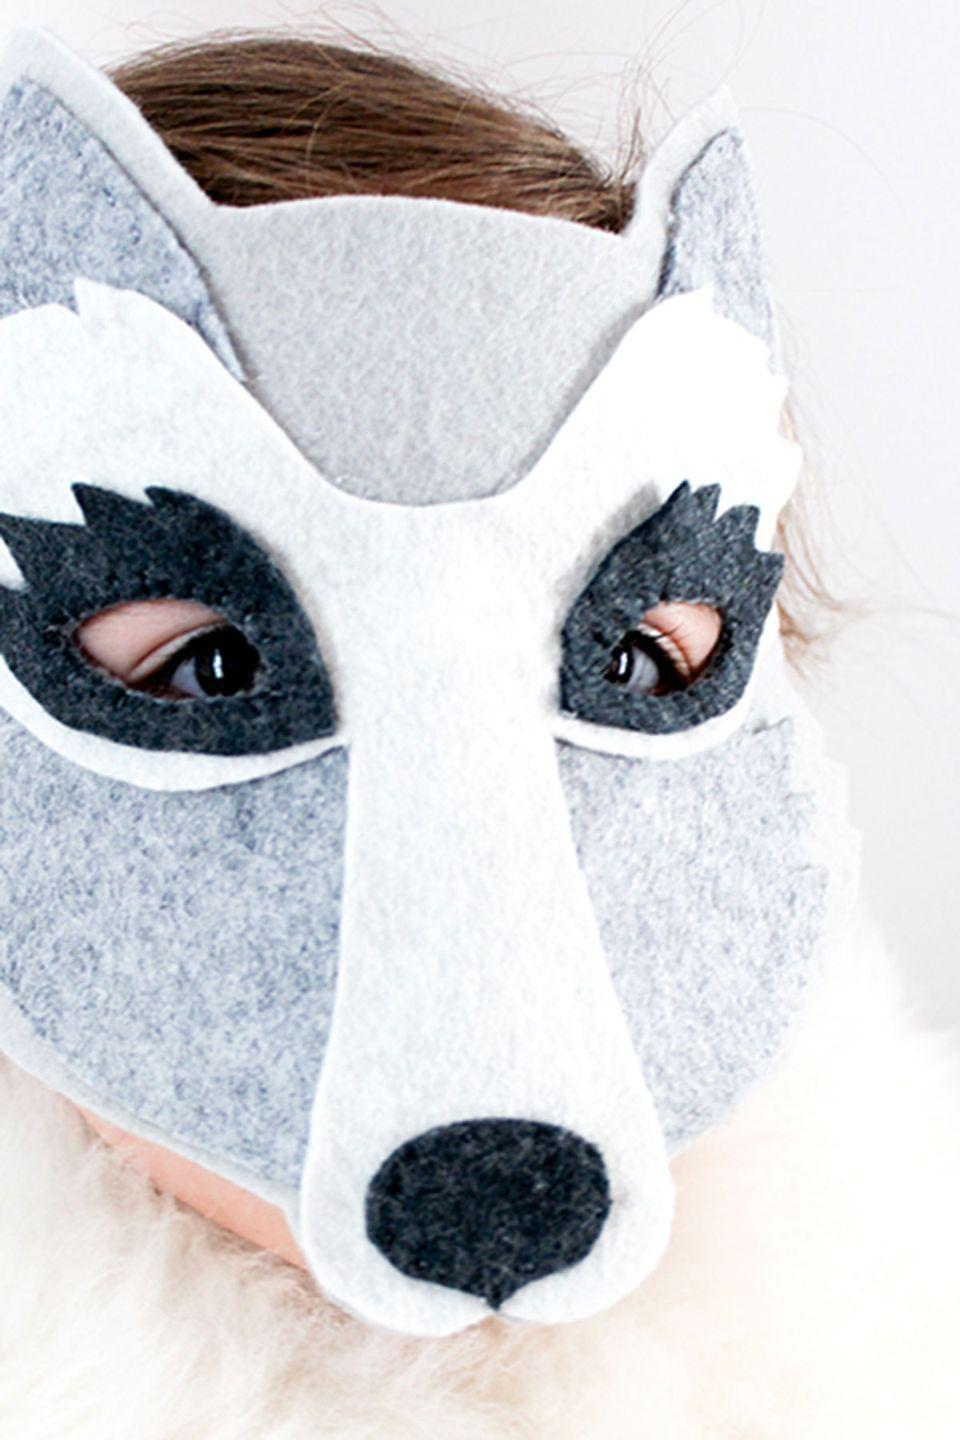 """<p>There's nothing scary about this adorable wolf mask. </p><p><strong>Get the tutorial at <a href=""""http://ohmyhandmade.com/2013/hands/let-them-howl-diy-wolf-mask-tutorial/"""" rel=""""nofollow noopener"""" target=""""_blank"""" data-ylk=""""slk:Oh My Handmade"""" class=""""link rapid-noclick-resp"""">Oh My Handmade</a>. </strong></p><p><a class=""""link rapid-noclick-resp"""" href=""""https://www.amazon.com/Acrylic-Sheets-Fabric-Children-Classes/dp/B076NJM2CM/?tag=syn-yahoo-20&ascsubtag=%5Bartid%7C10050.g.3480%5Bsrc%7Cyahoo-us"""" rel=""""nofollow noopener"""" target=""""_blank"""" data-ylk=""""slk:SHOP WHITE FELT""""><strong>SHOP WHITE FELT</strong> </a></p>"""